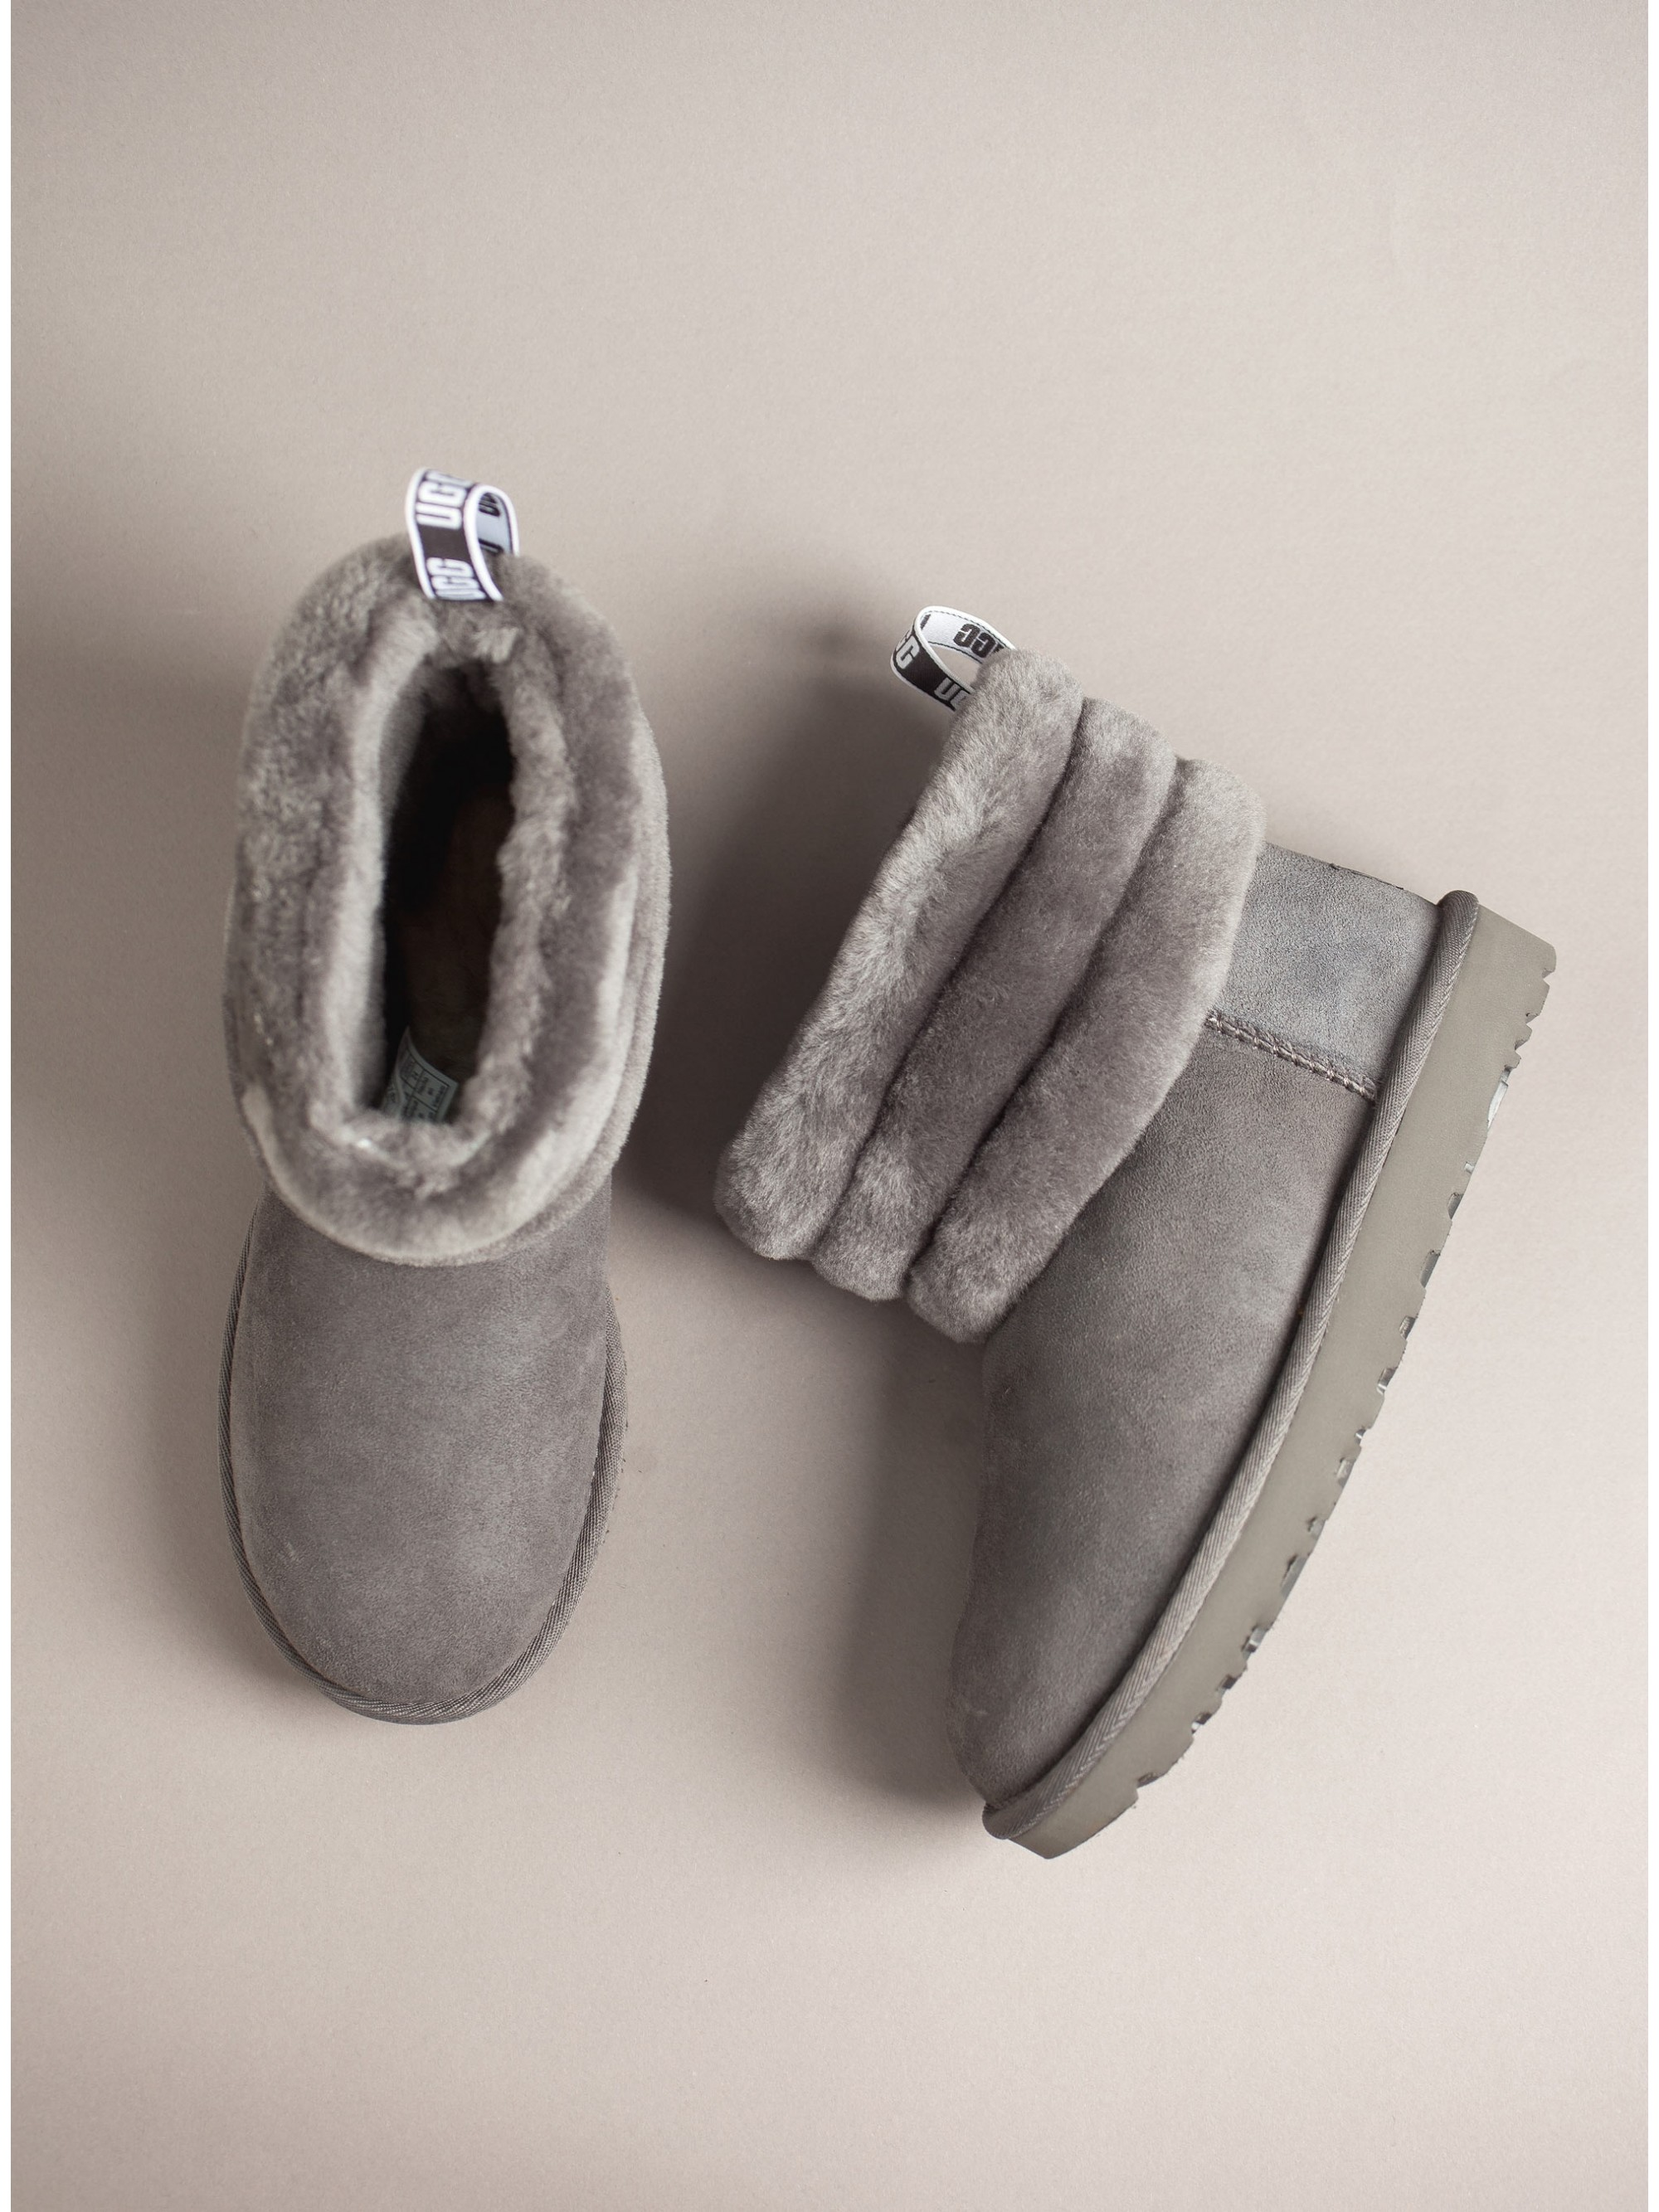 484290f08412 Ugg Australia Ankle Boots Fluff Mini Quilted-Grey. Home · Women  Ugg  Australia Ankle Boots Fluff Mini Quilted-Grey